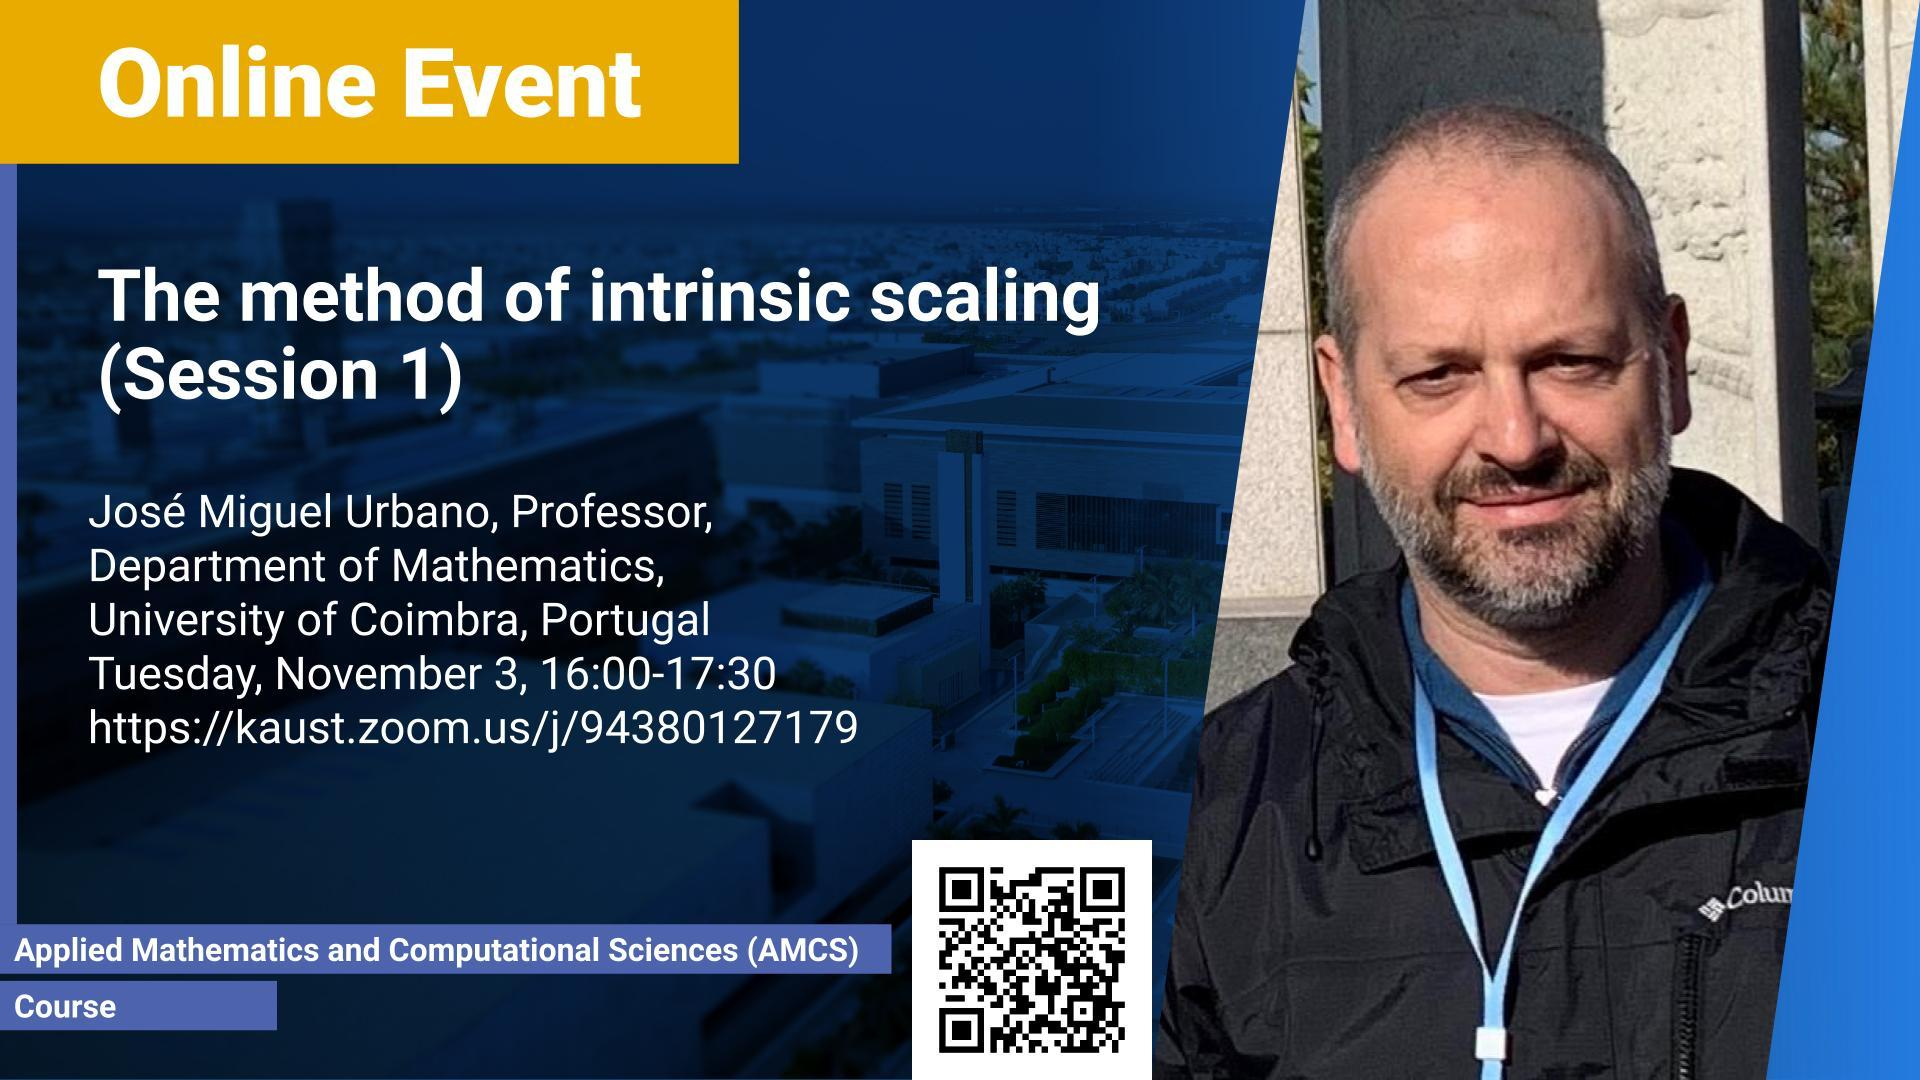 KAUST CEMSE AMCS Jose Urbano The method of intrinsic scaling Session 1